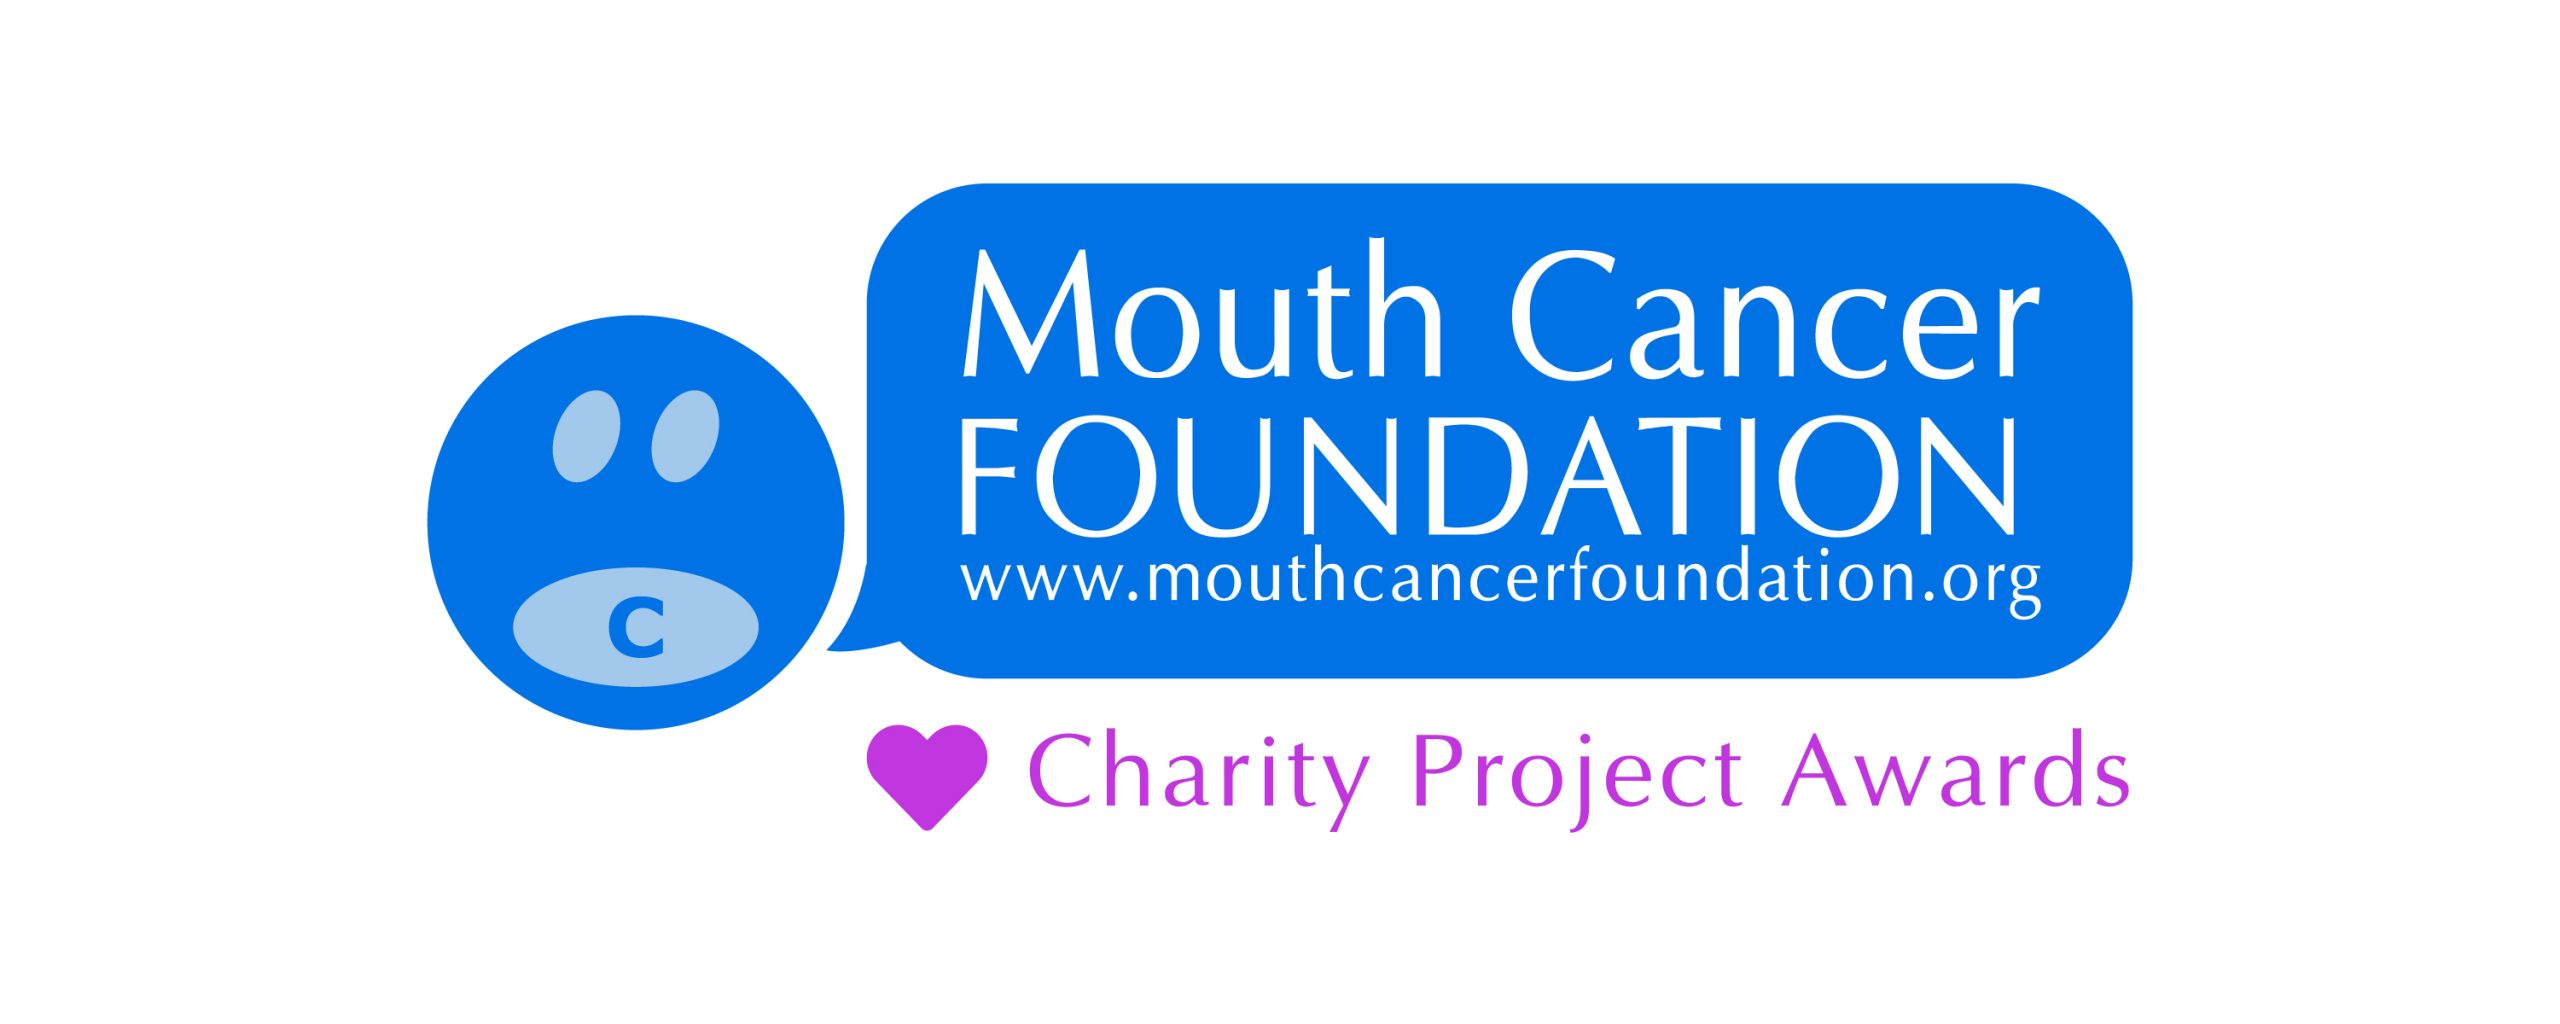 DON'T MISS OUT ON OUR CHARITY PROJECT AWARDS!